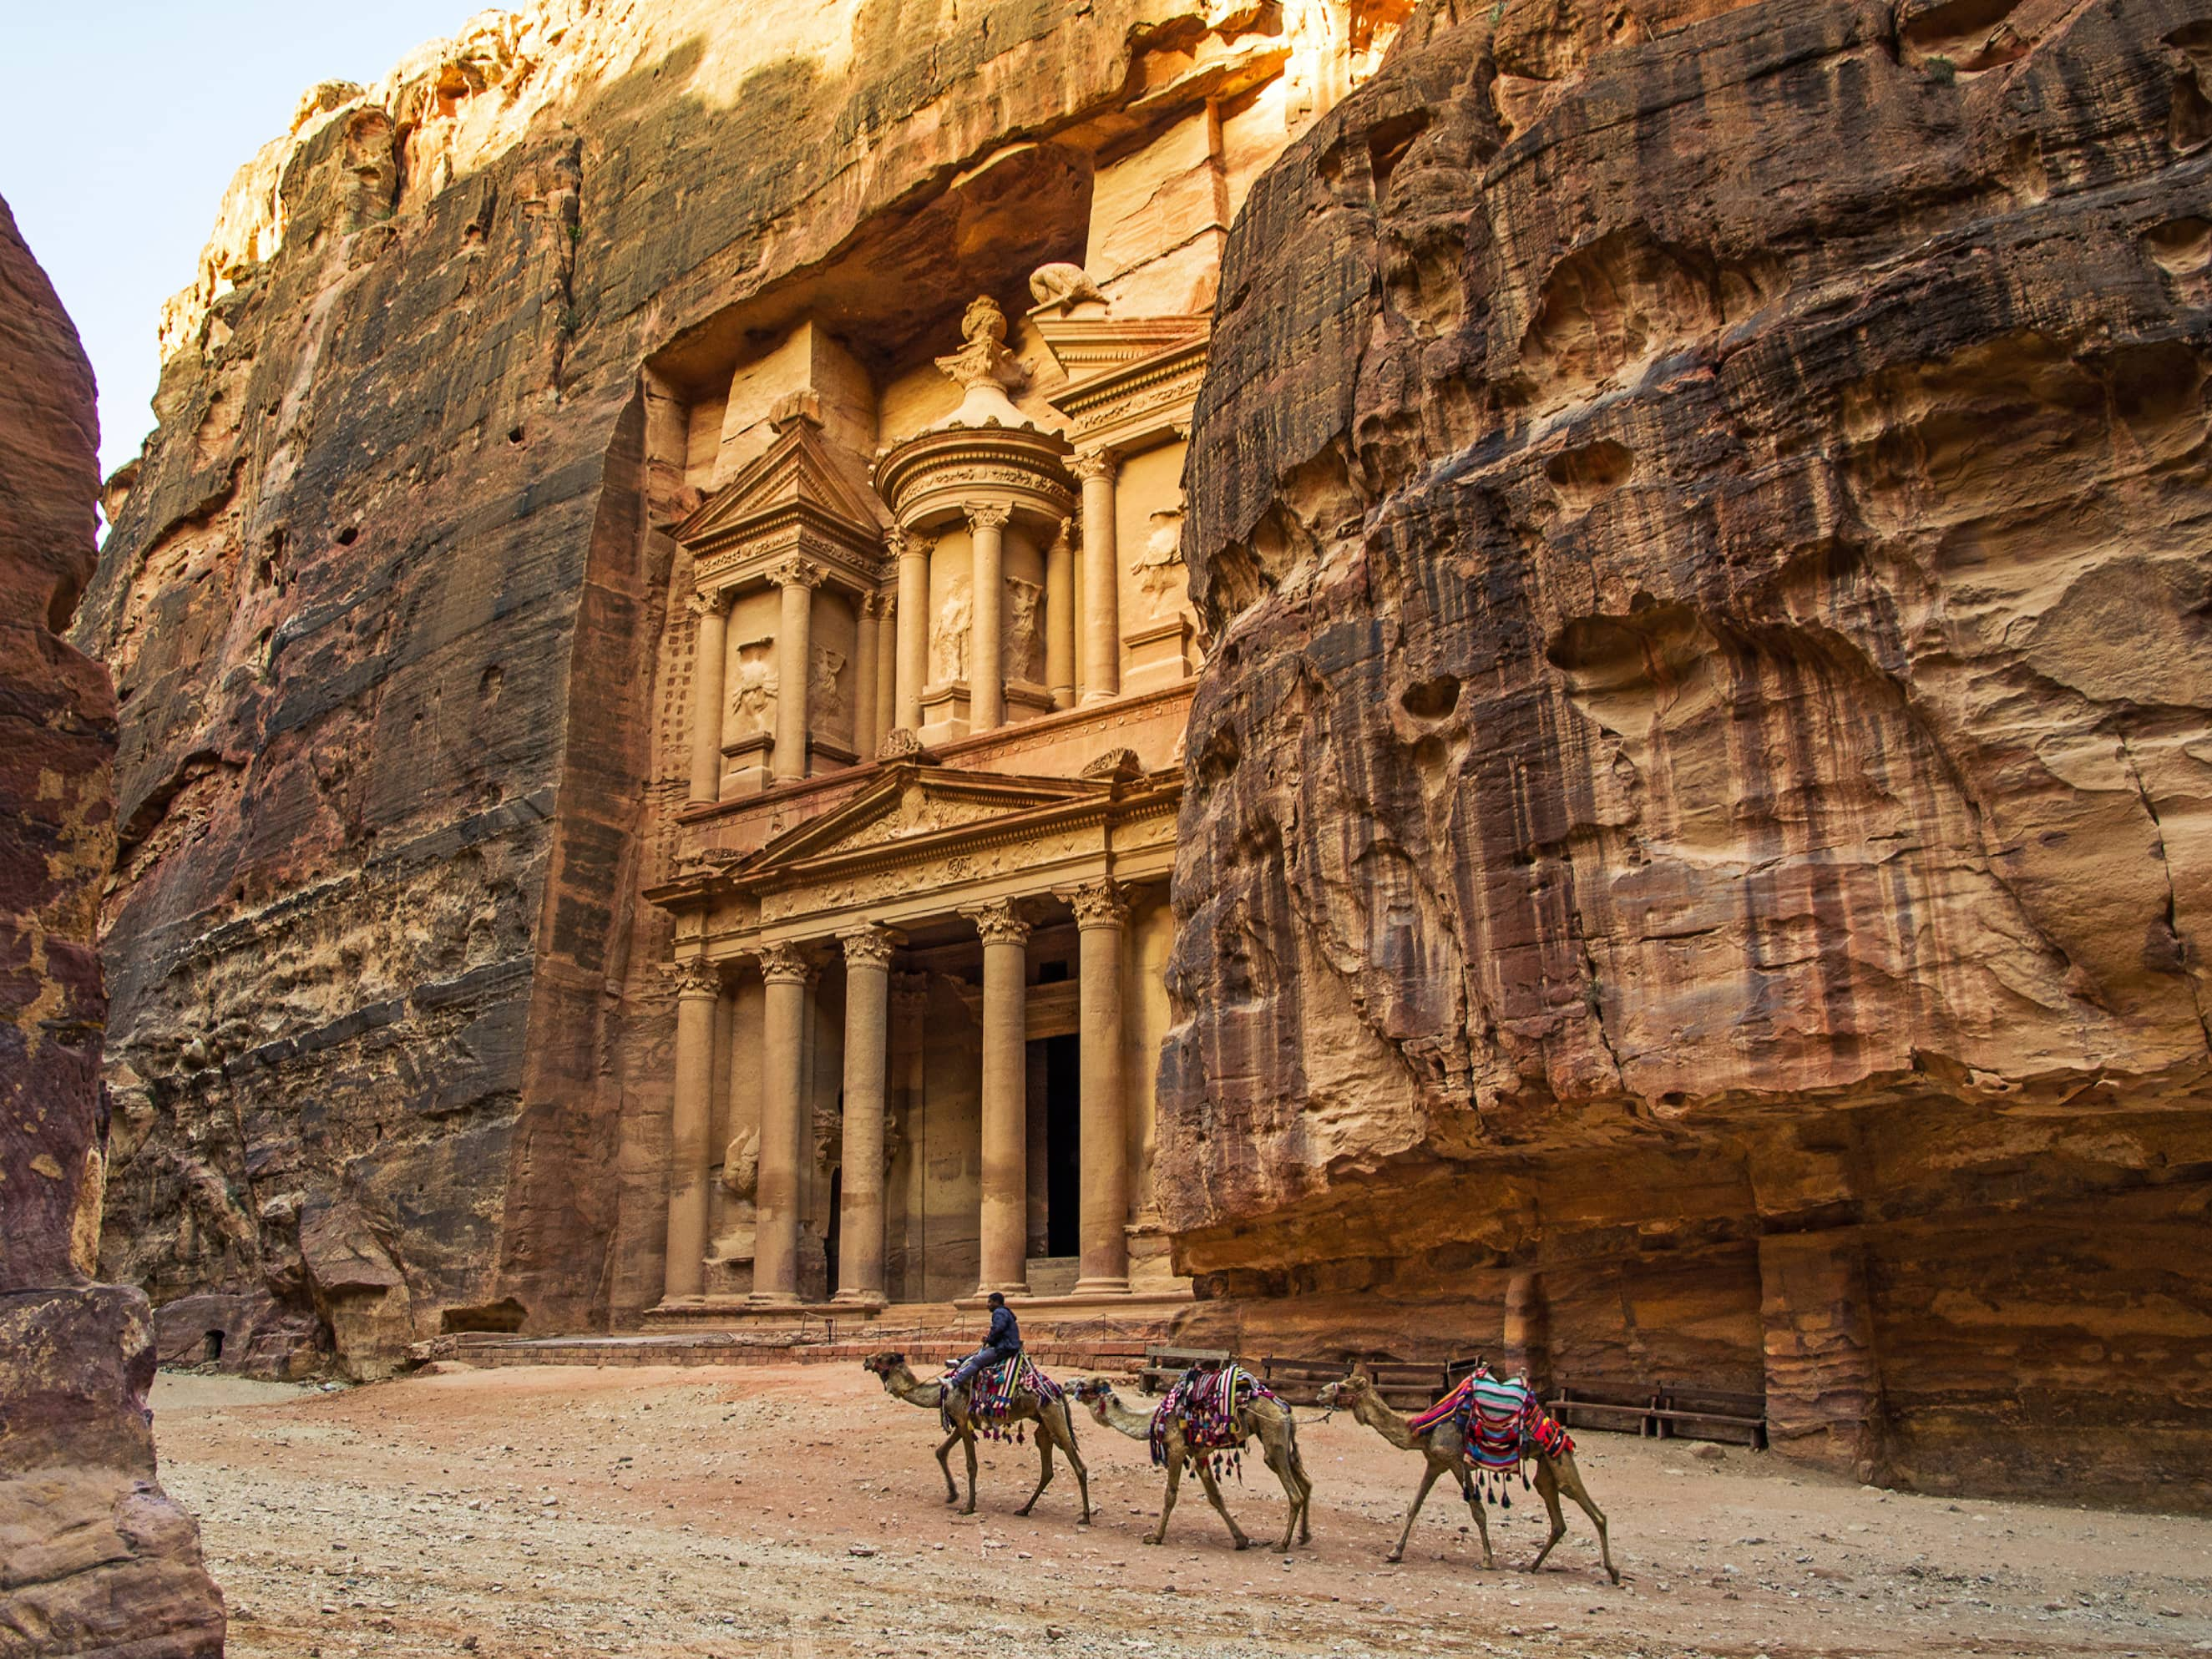 Wander the Ancient Streets of the Lost City of Petra